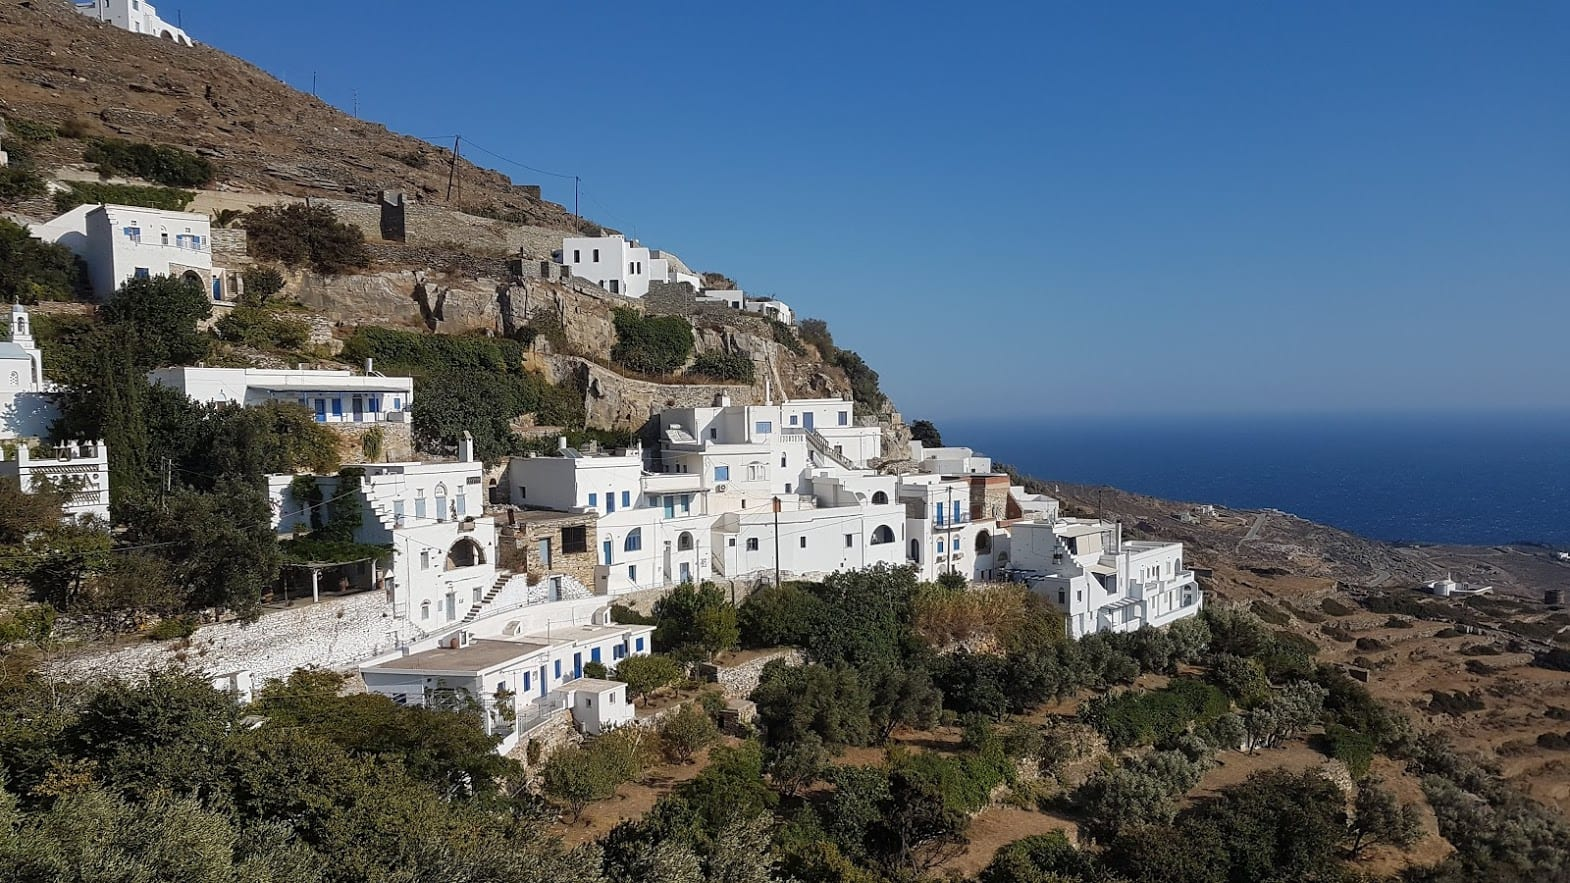 A village in Tinos island, Greece